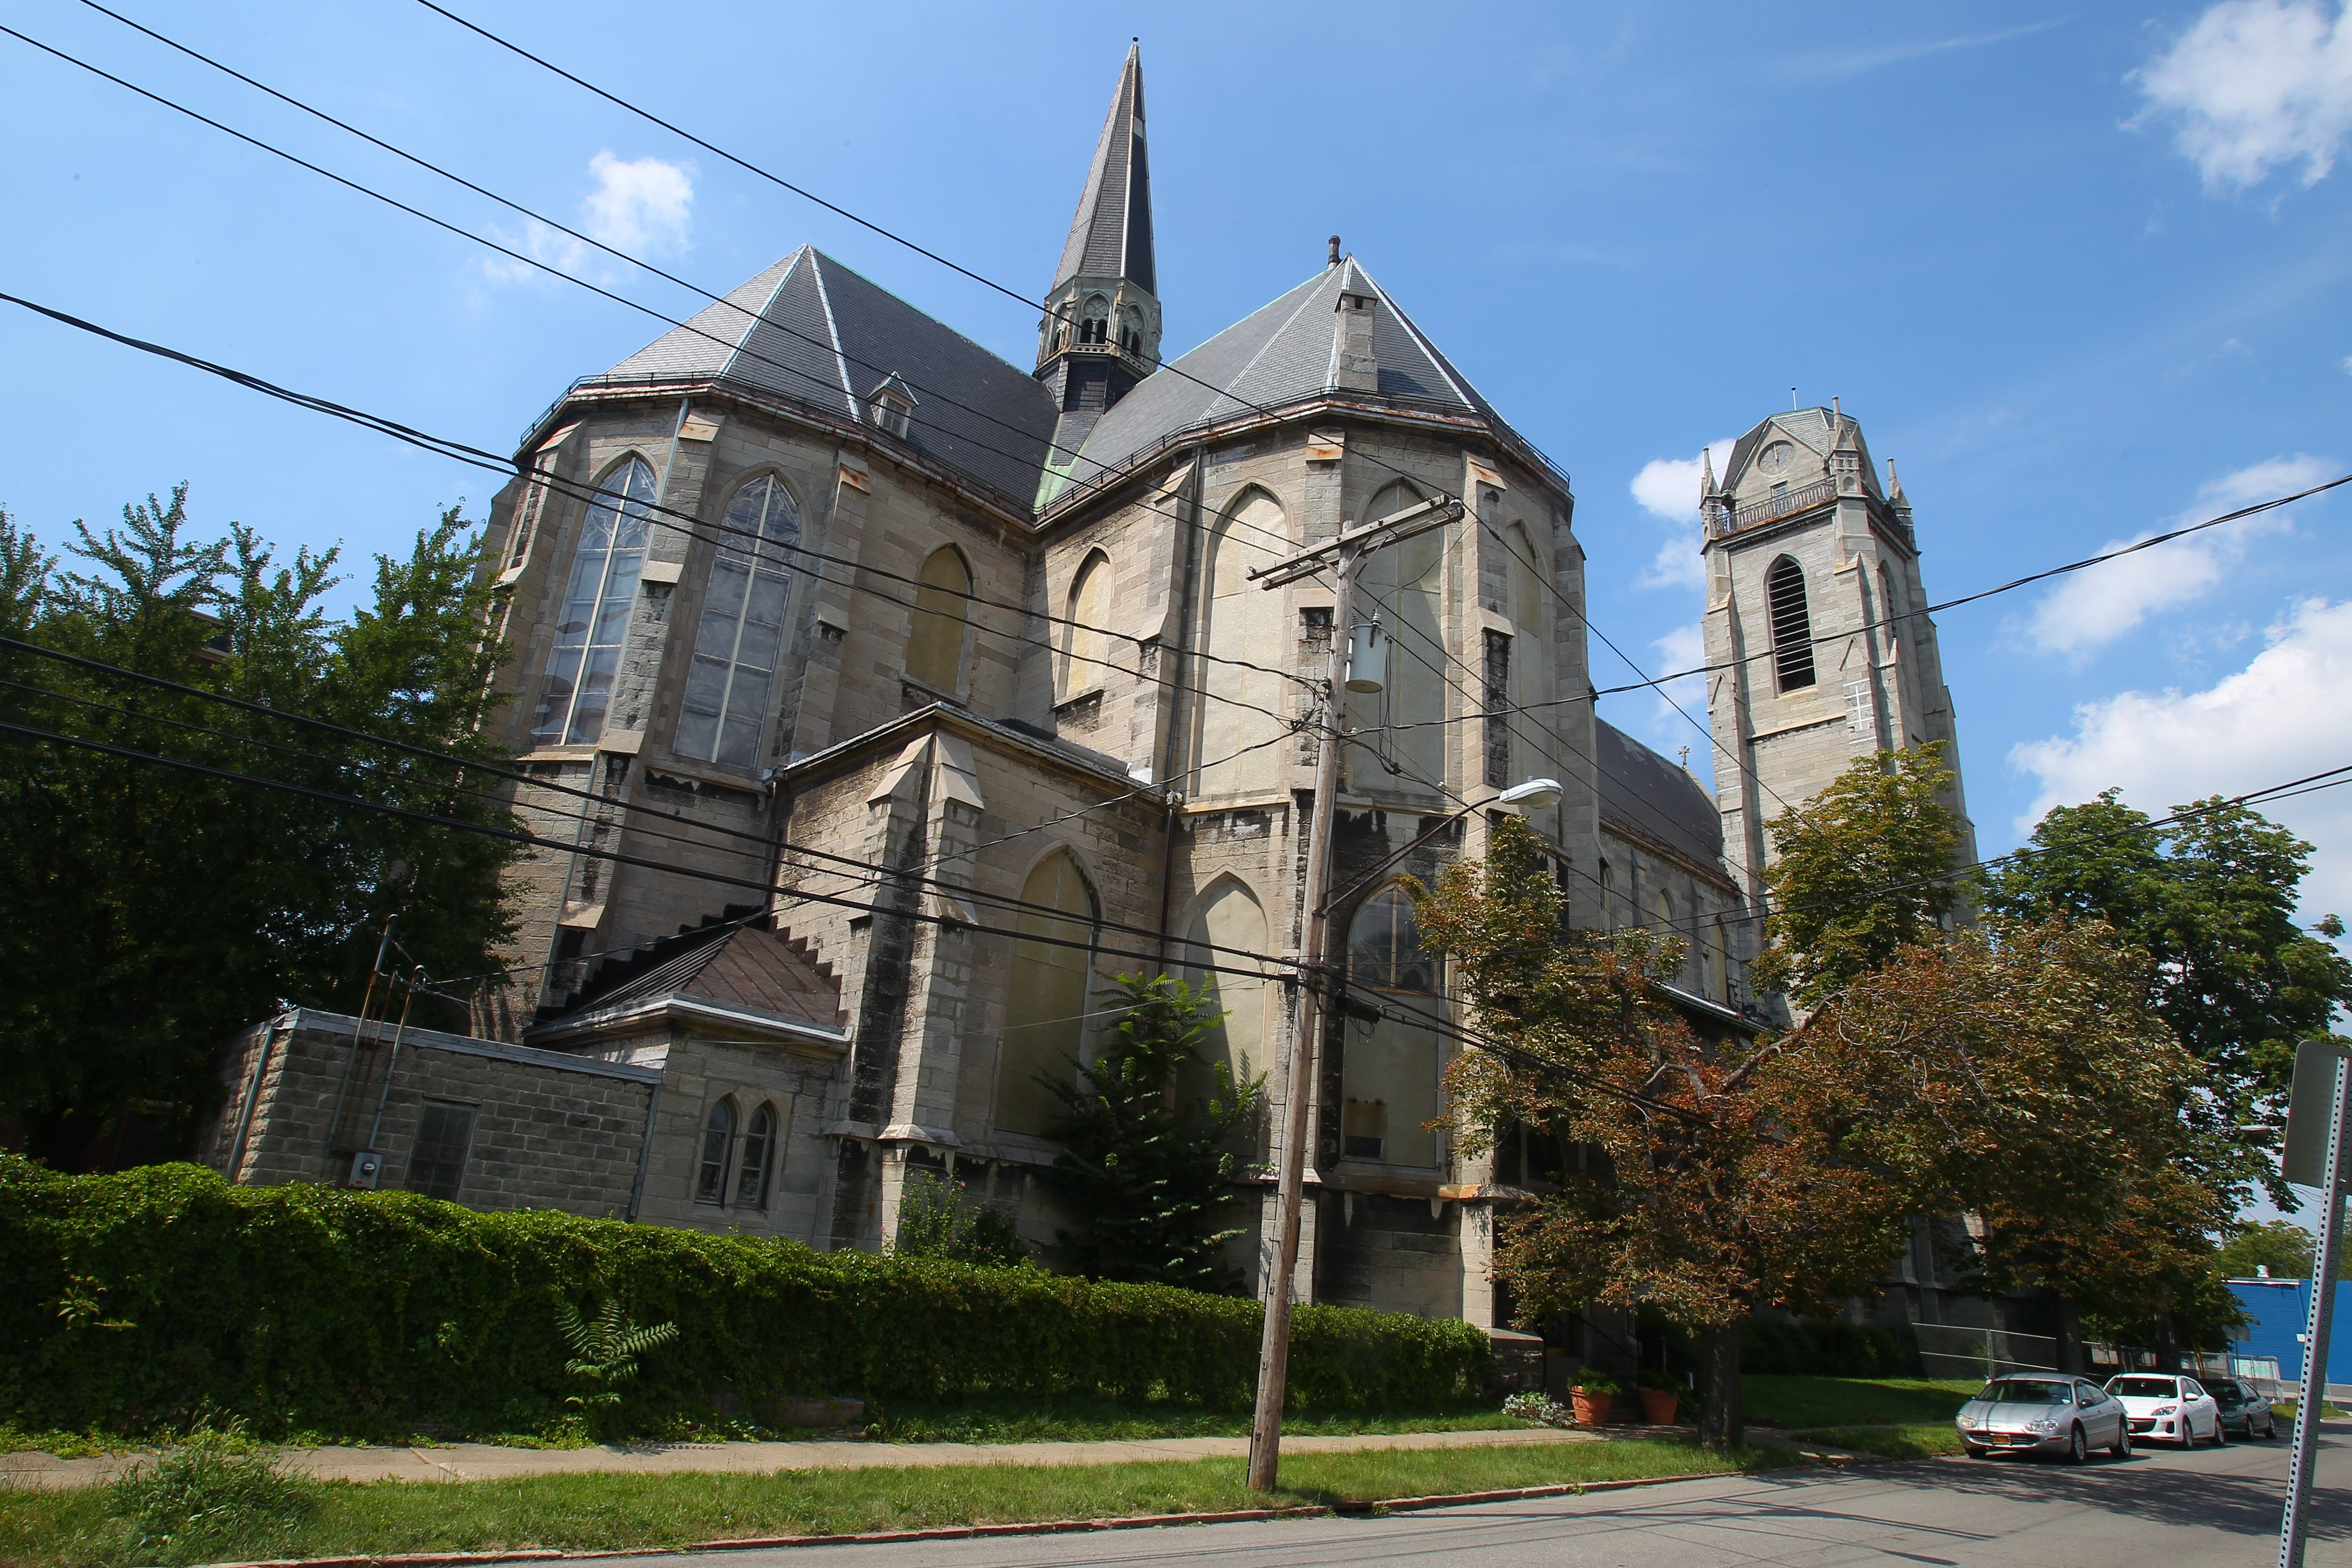 Buffalo Catholic Bishop Richard Malone said the diocese will appeal a Vatican degree that upheld parishioners trying to save historic St. Ann's Catholic Church on Buffalo's East Side.